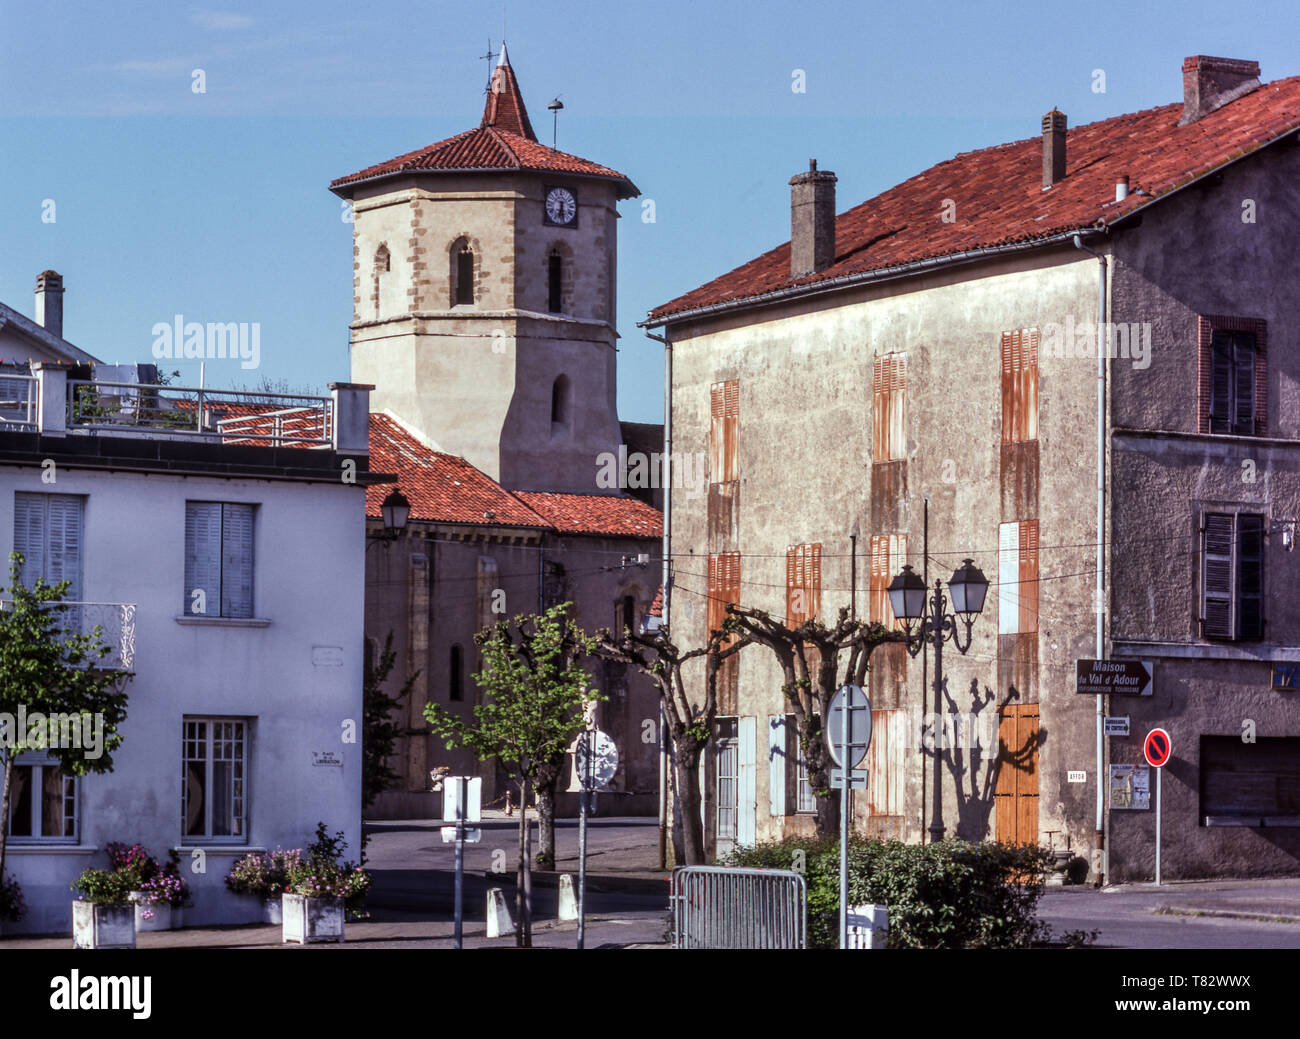 The market town of Maubourguet in the Department of Hautes-Pyrenees.France - Stock Image